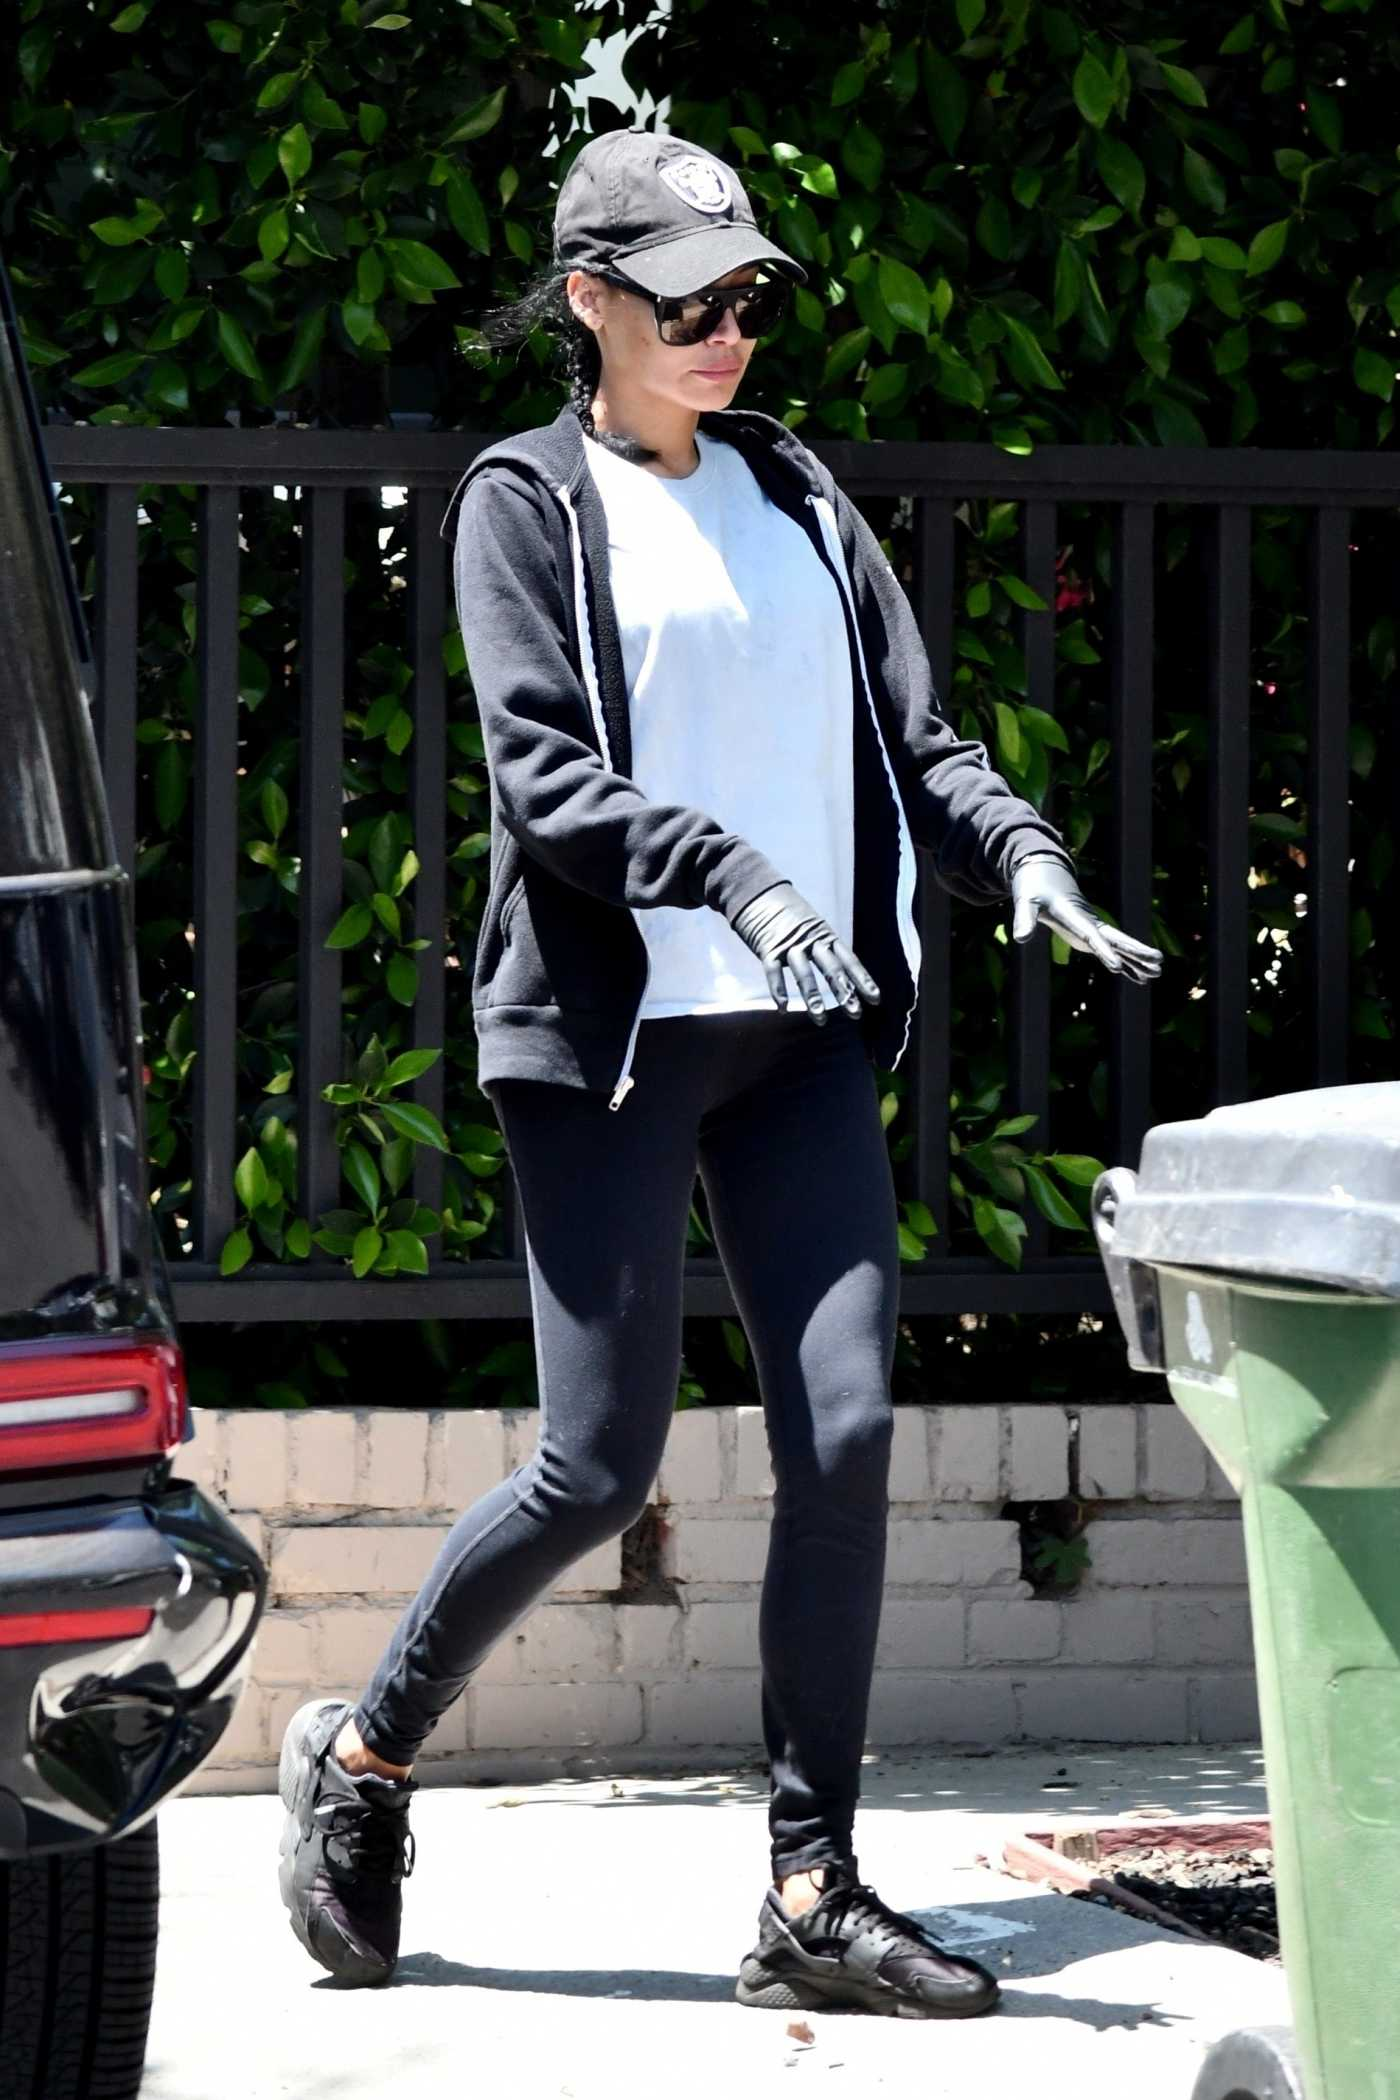 Naya Rivera in a Black Sneakers Steps Out to Grab Her Trash Cans in Los Feliz 05/02/2020